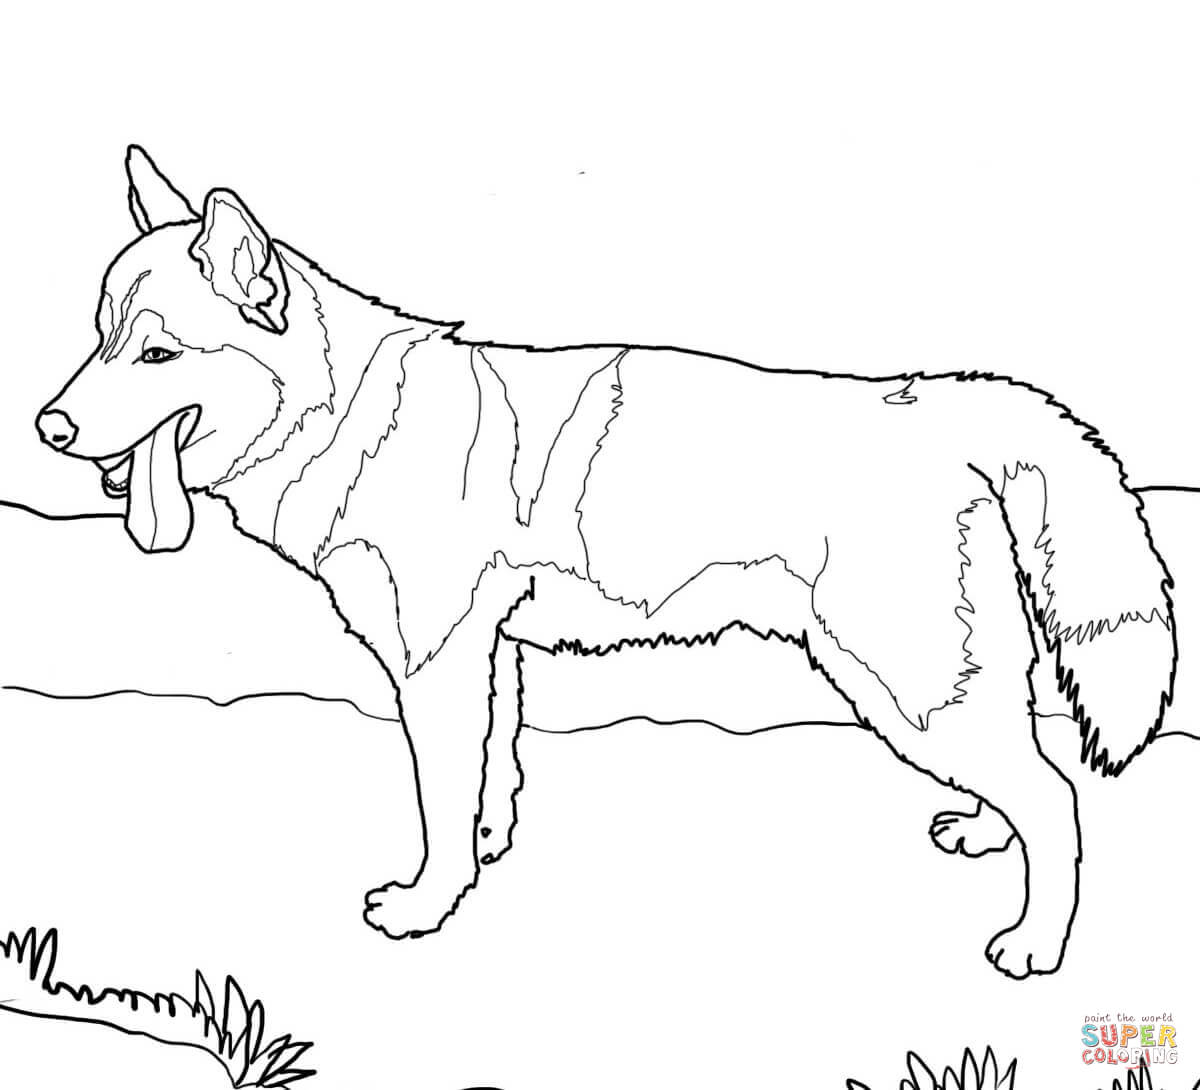 Colouring sheets of dogs - German Shepherd Dogs Coloring Page Free Printable Coloring Pages Printable